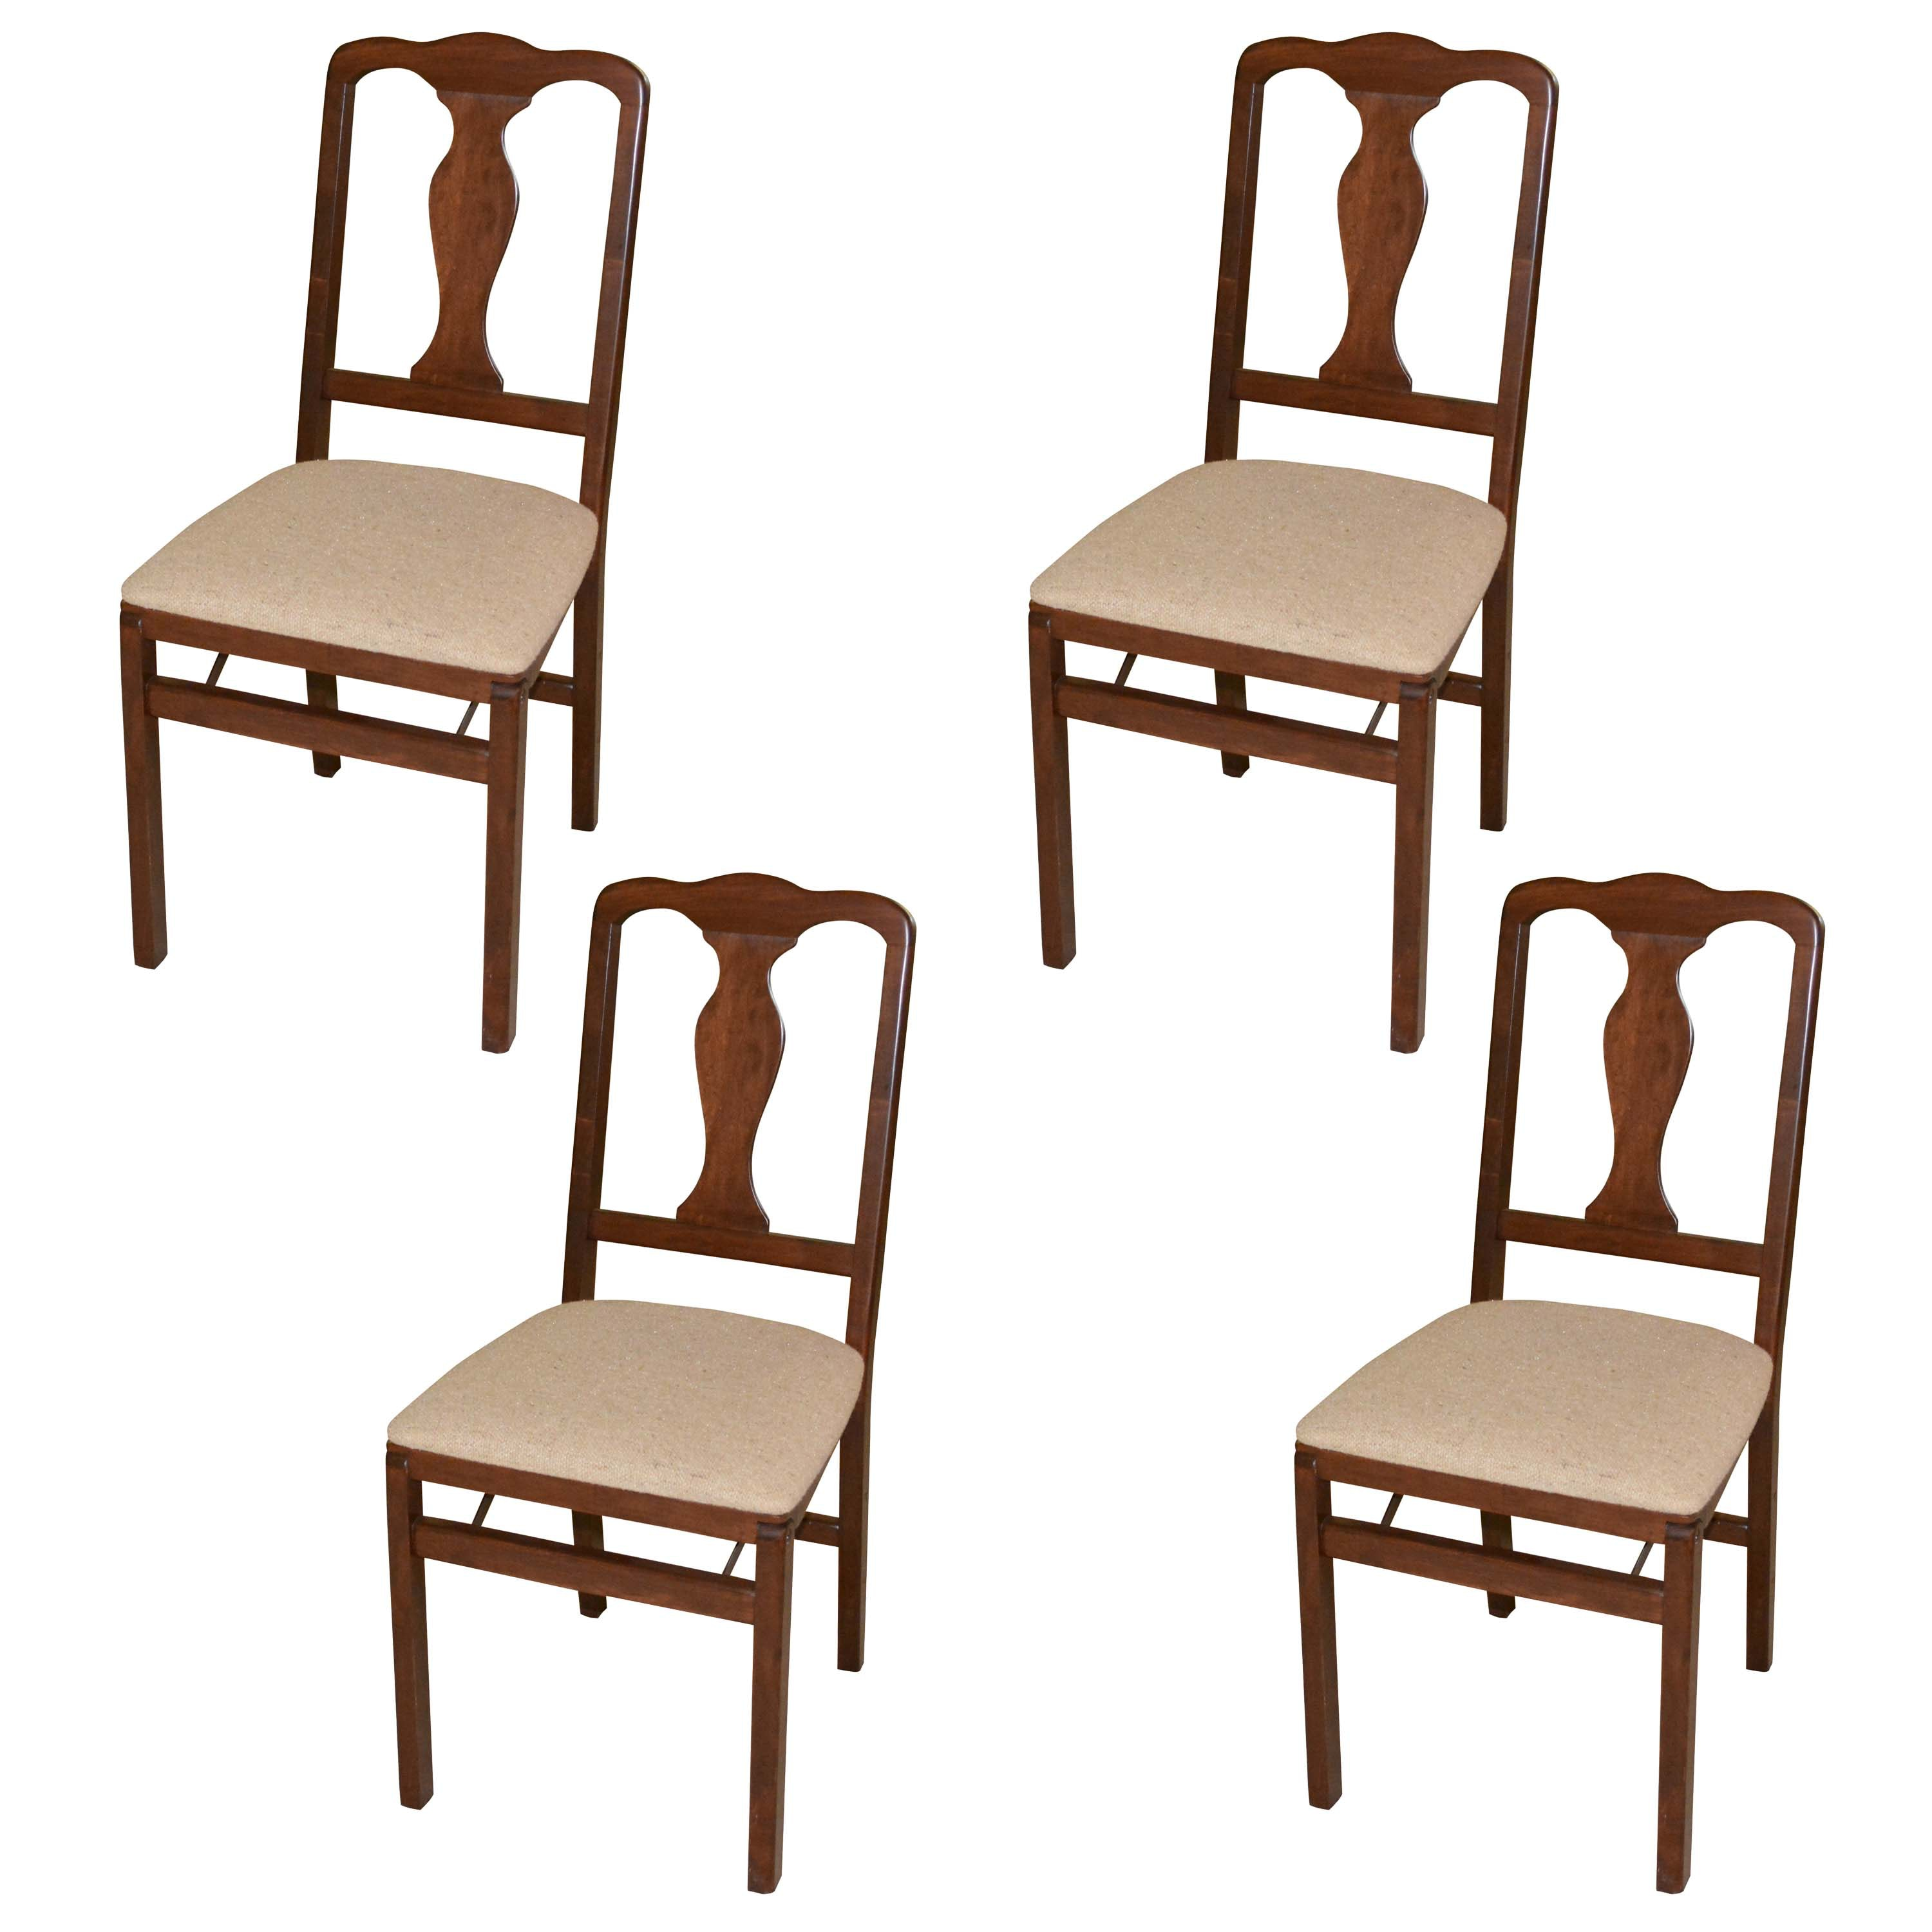 Stakmore Folding Side Chairs